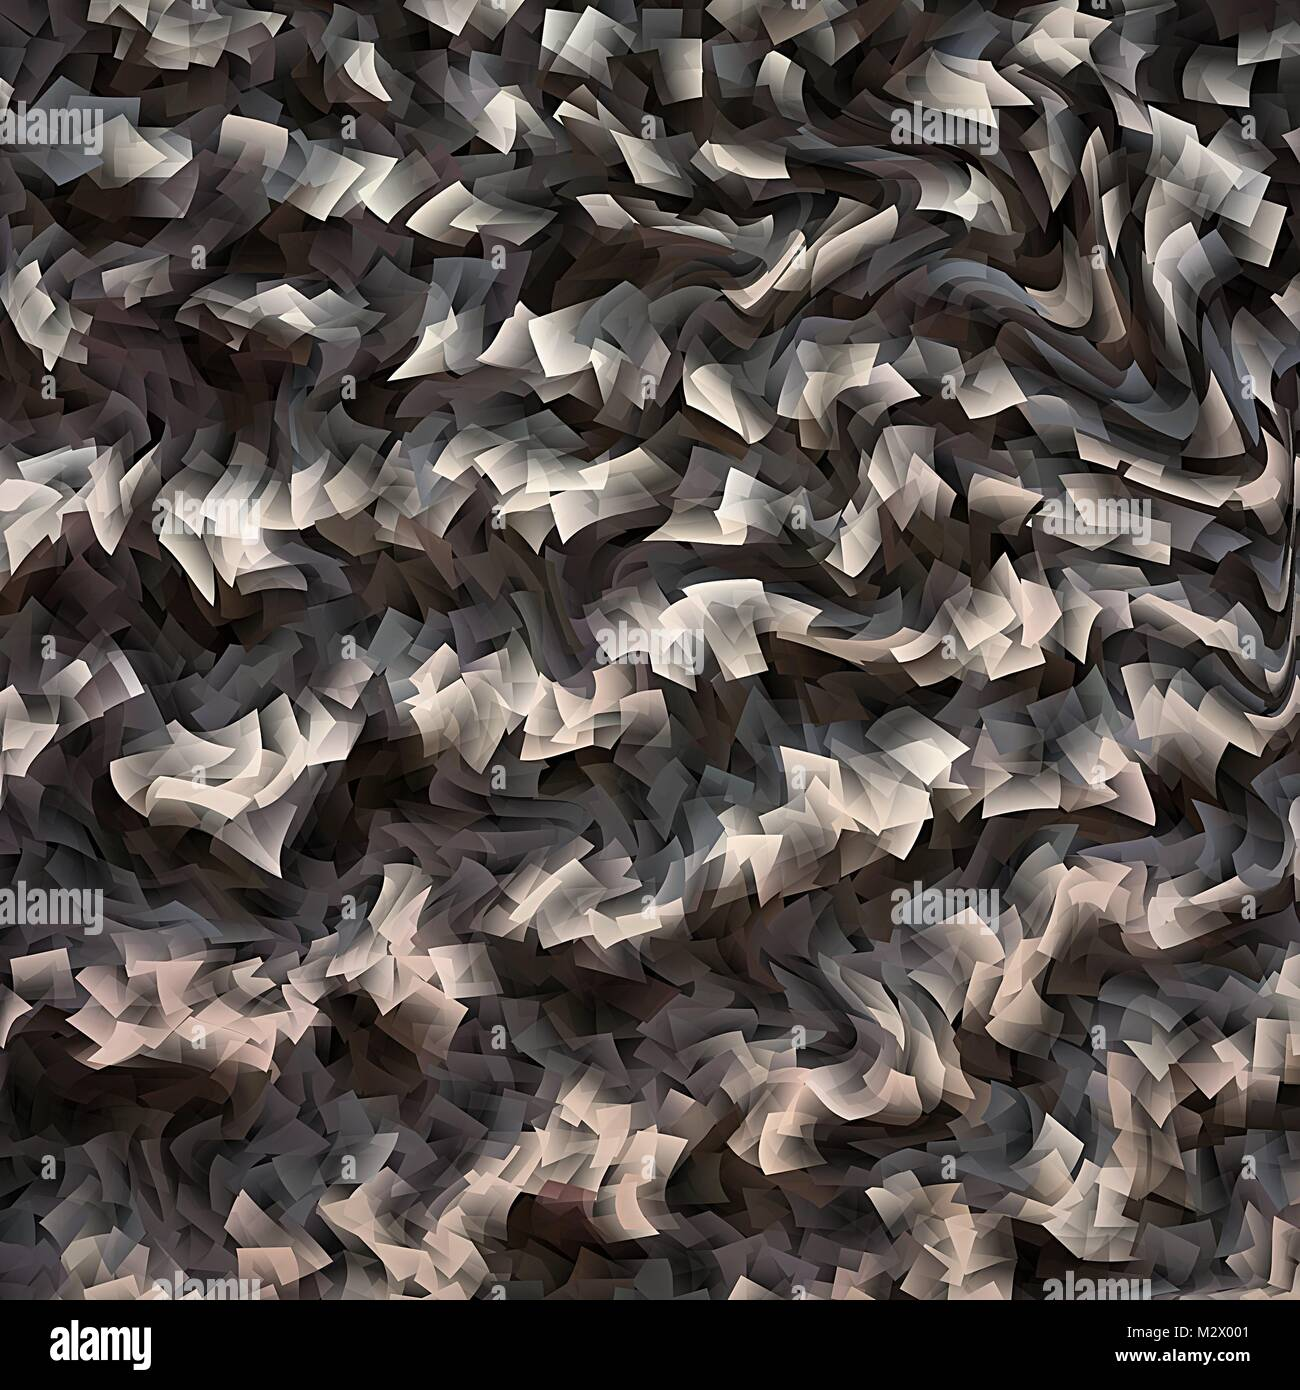 Abstract grey and black warped fractal background - Stock Image